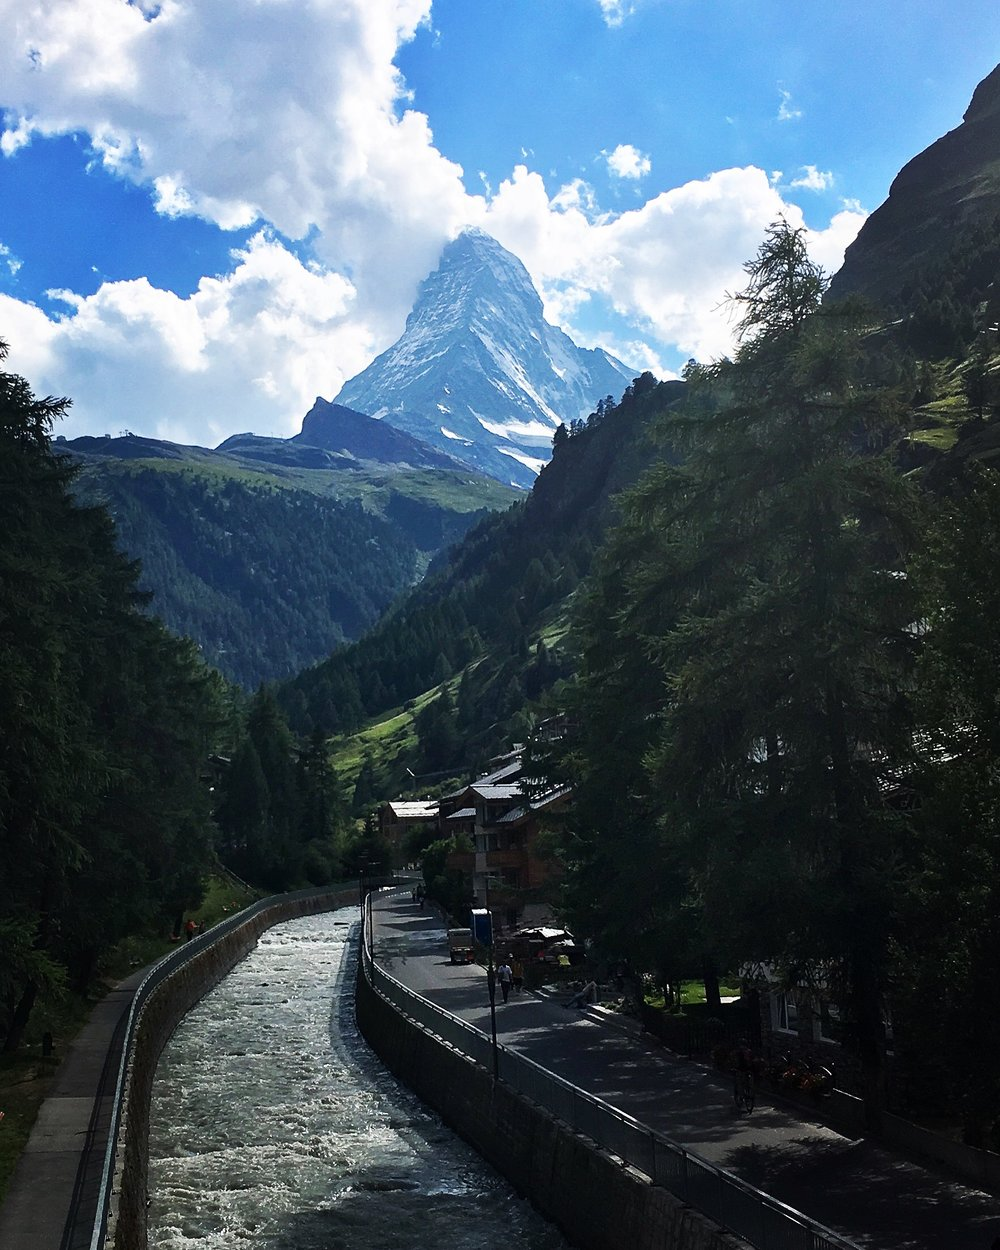 Day 7:   Zermatt, Switzerland   The Matterhorn stands far beyond the Vispa River. In German, 'Matte' translates to 'meadow' and so it is a meadowed-peak. Named after its approach, not so much it's climb, it represents the northeast precipice of this alpine adventure.